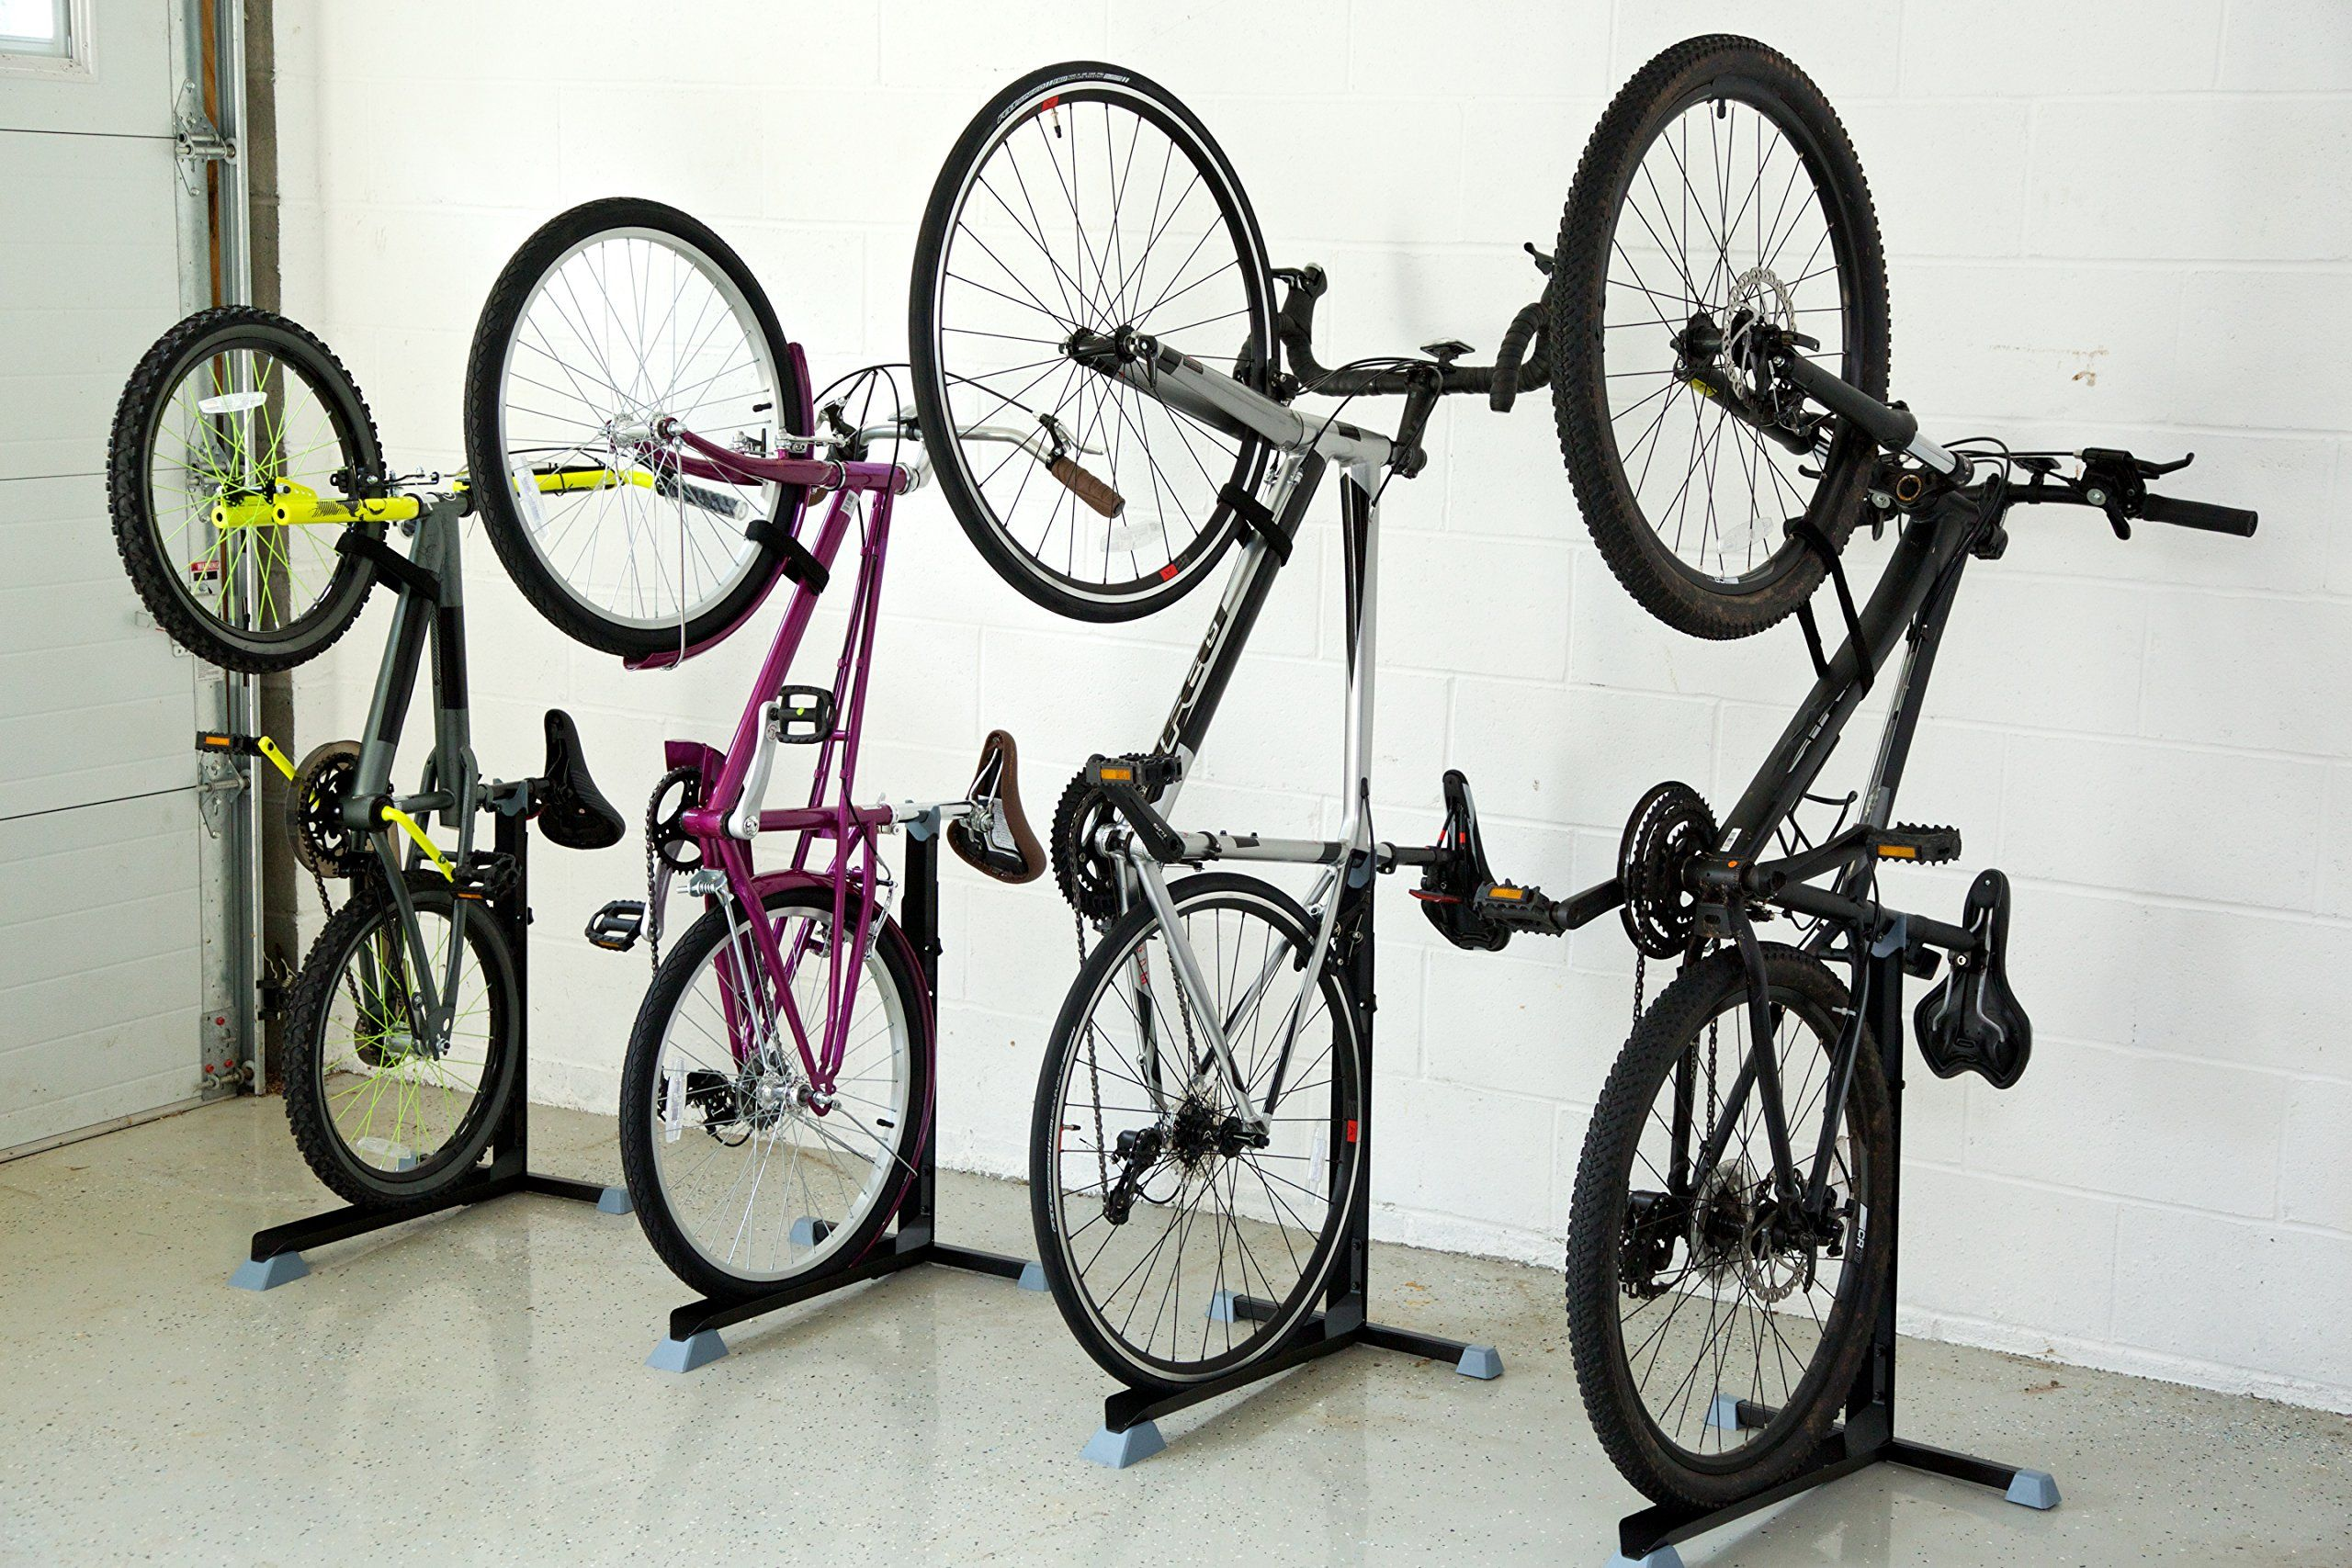 Bike Nook Bicycle Stand The Easytouse Upright Design Lets You